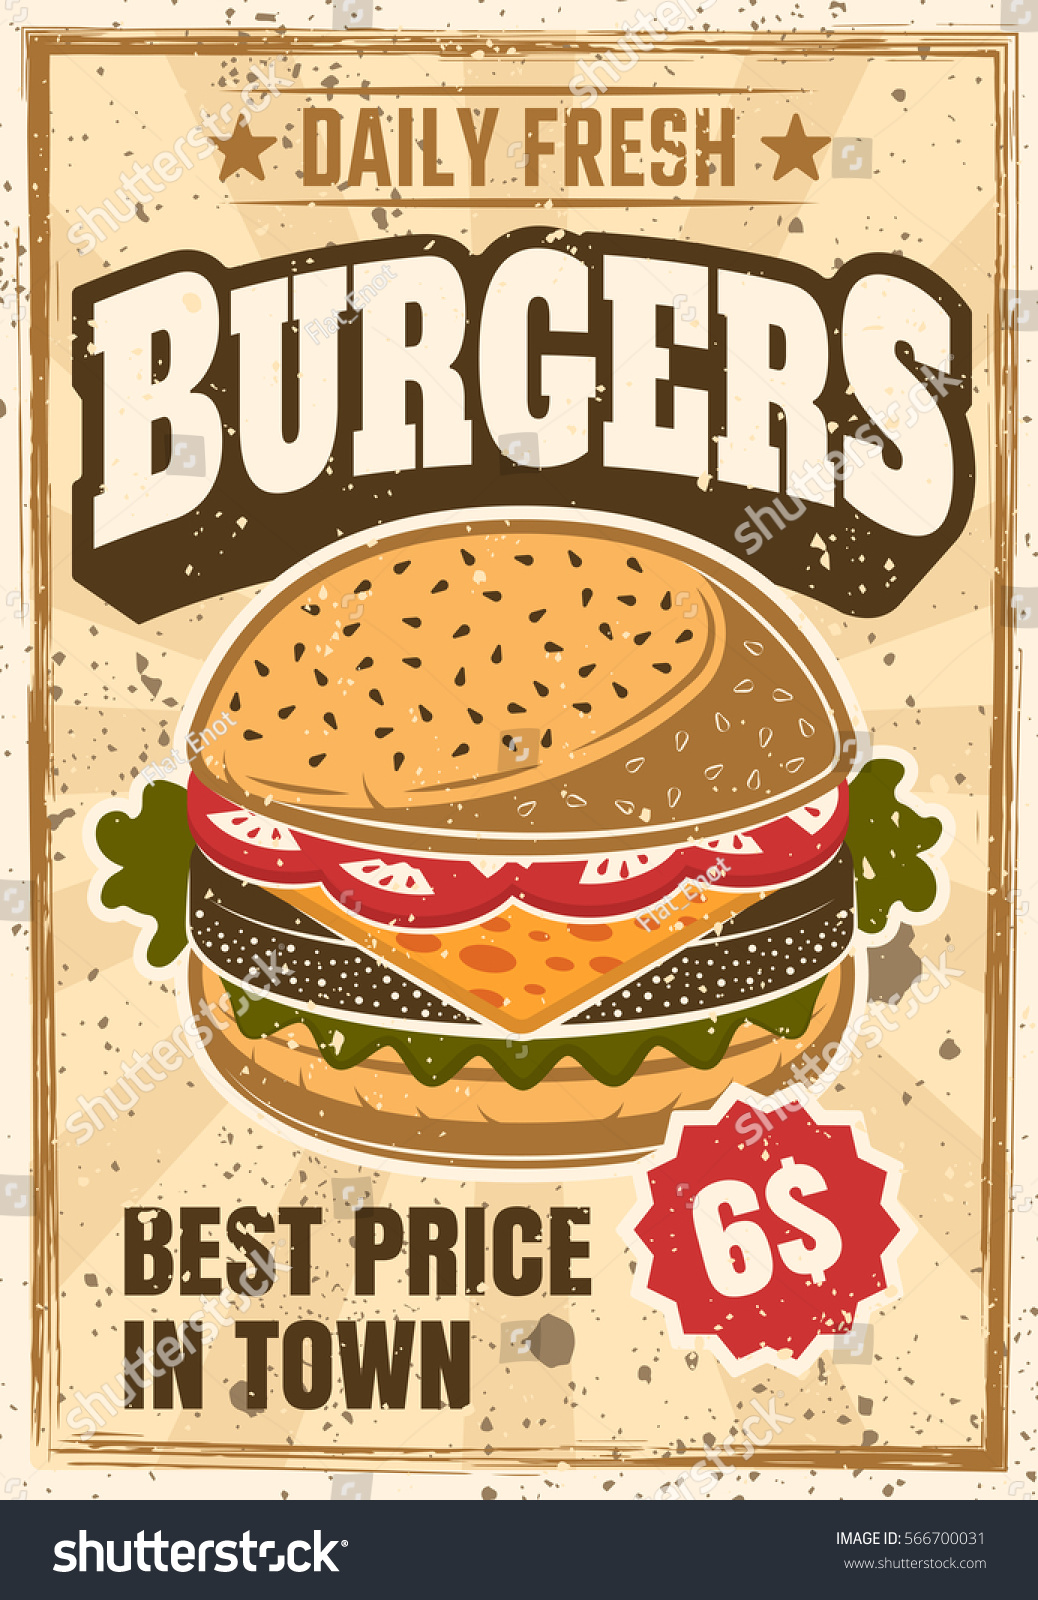 Burger Colored Advertising Poster Vintage Style Stock ...